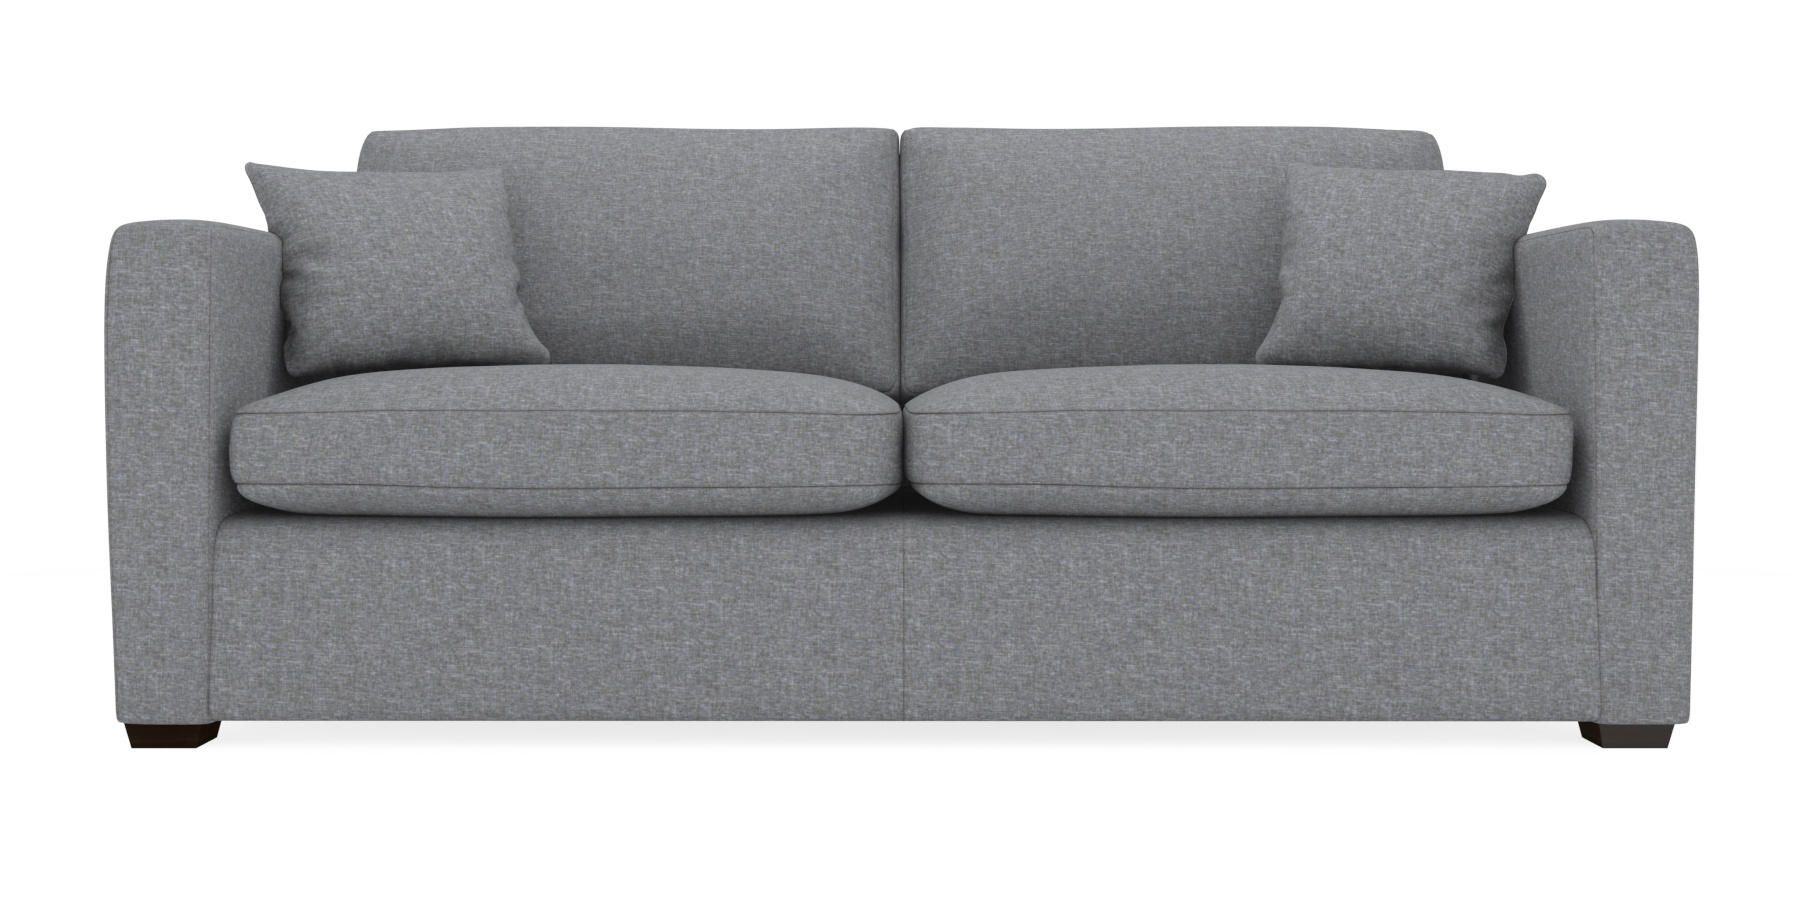 Grey Sofas Uk Next Buy Wentworth Large Sofa 3 Seats Versatile Plain Mid Grey Block